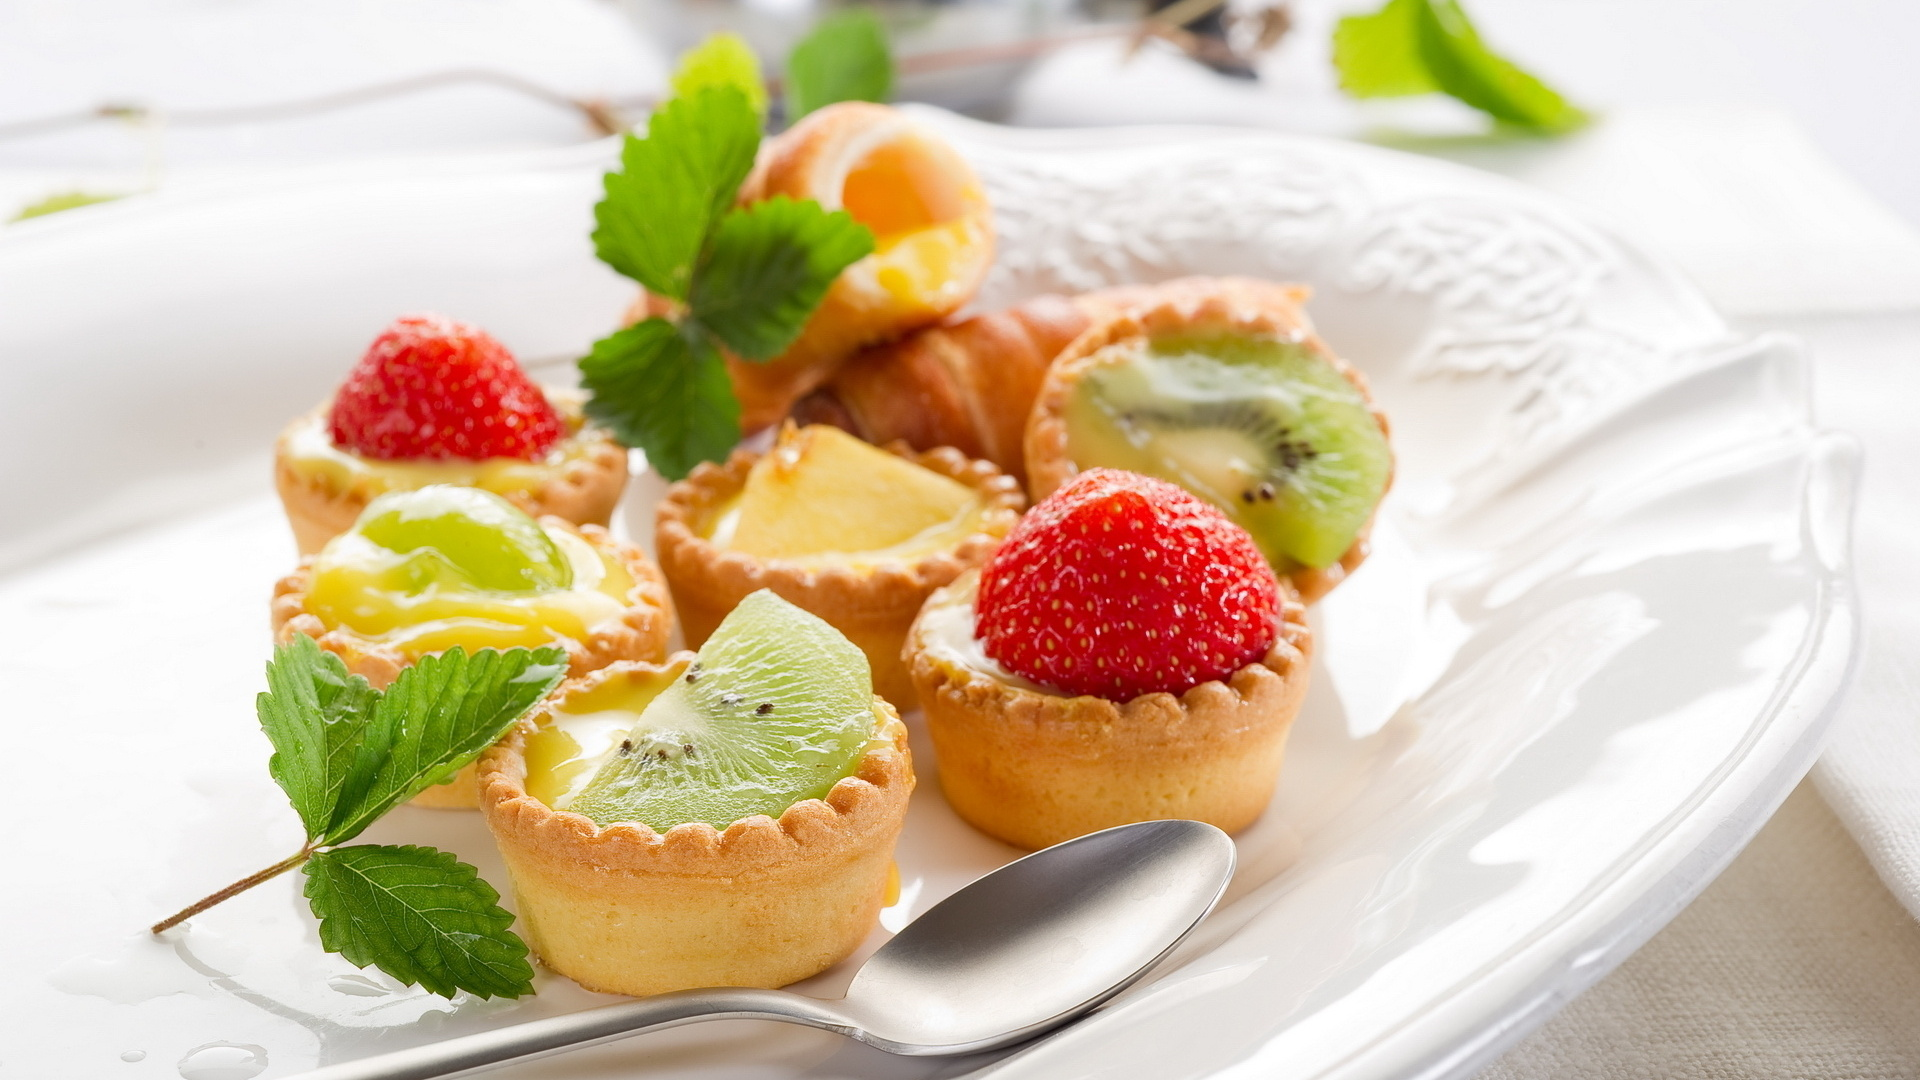 Pastry Wallpapers 42925